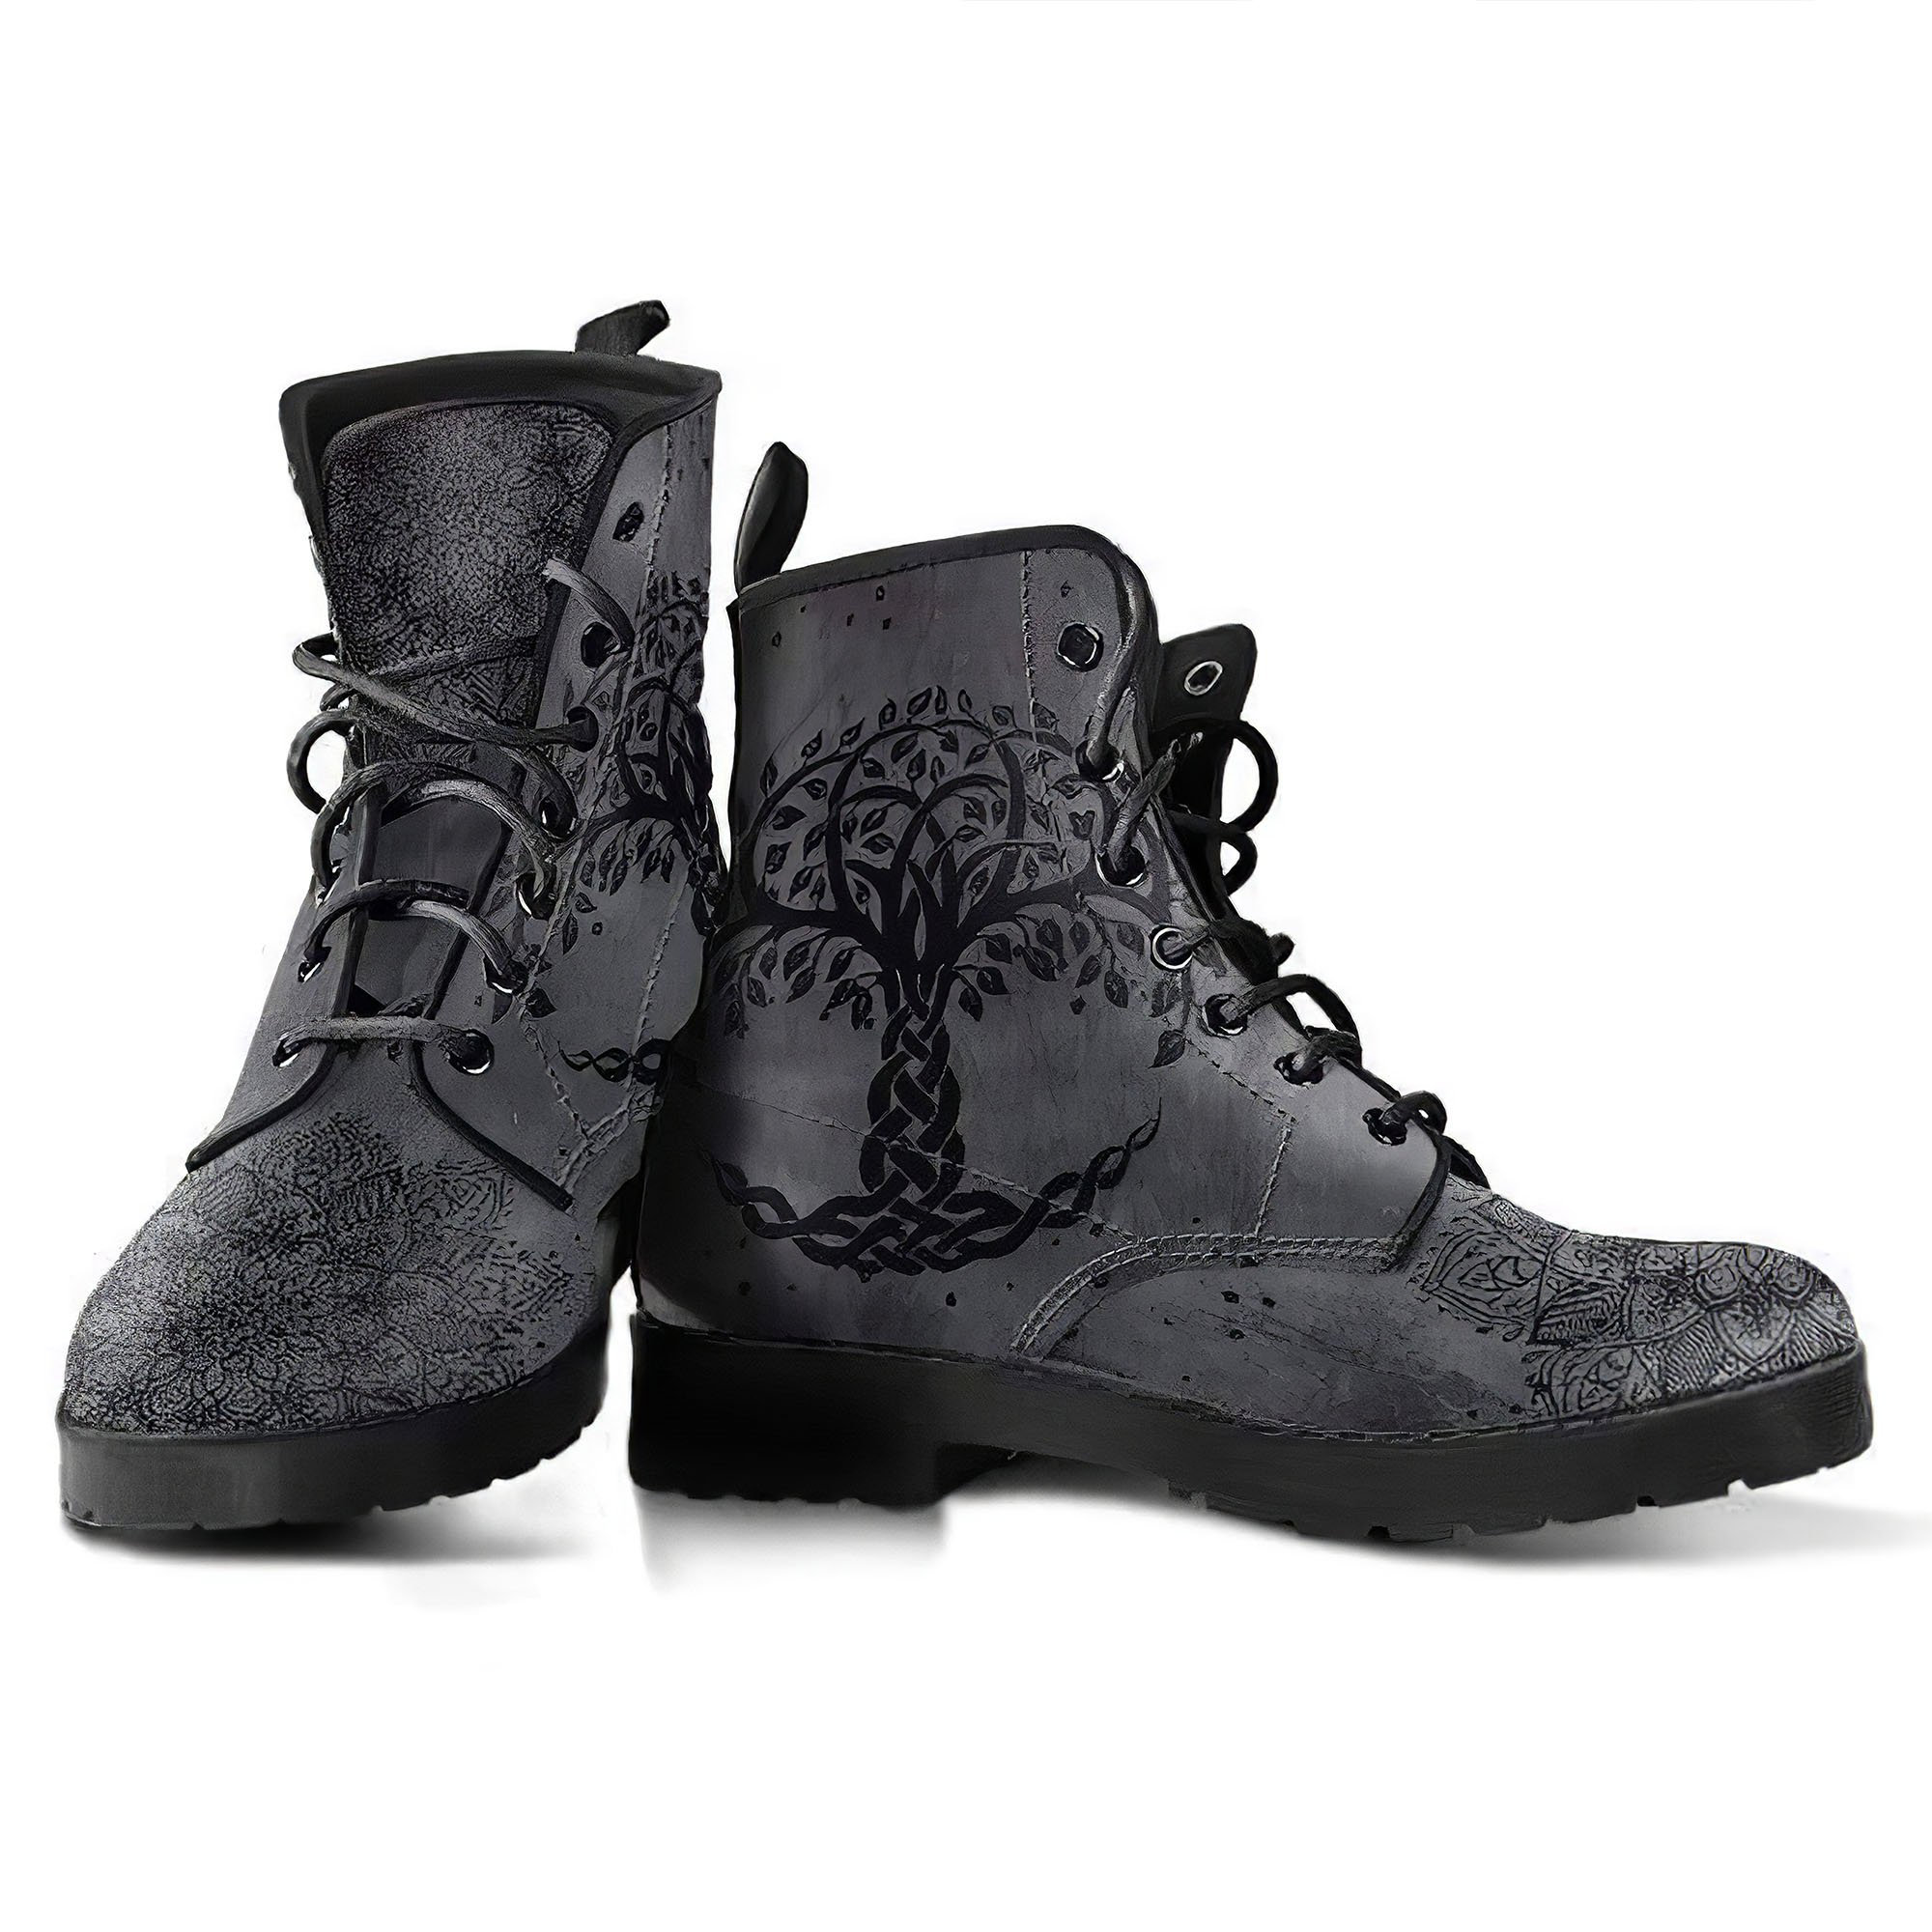 Grey Tree of Life, Handcrafted boots, Vegan Leather, ankle Boots women, Festival Boots, Bohemian Style, Hippie Boots, Hikers Boots women